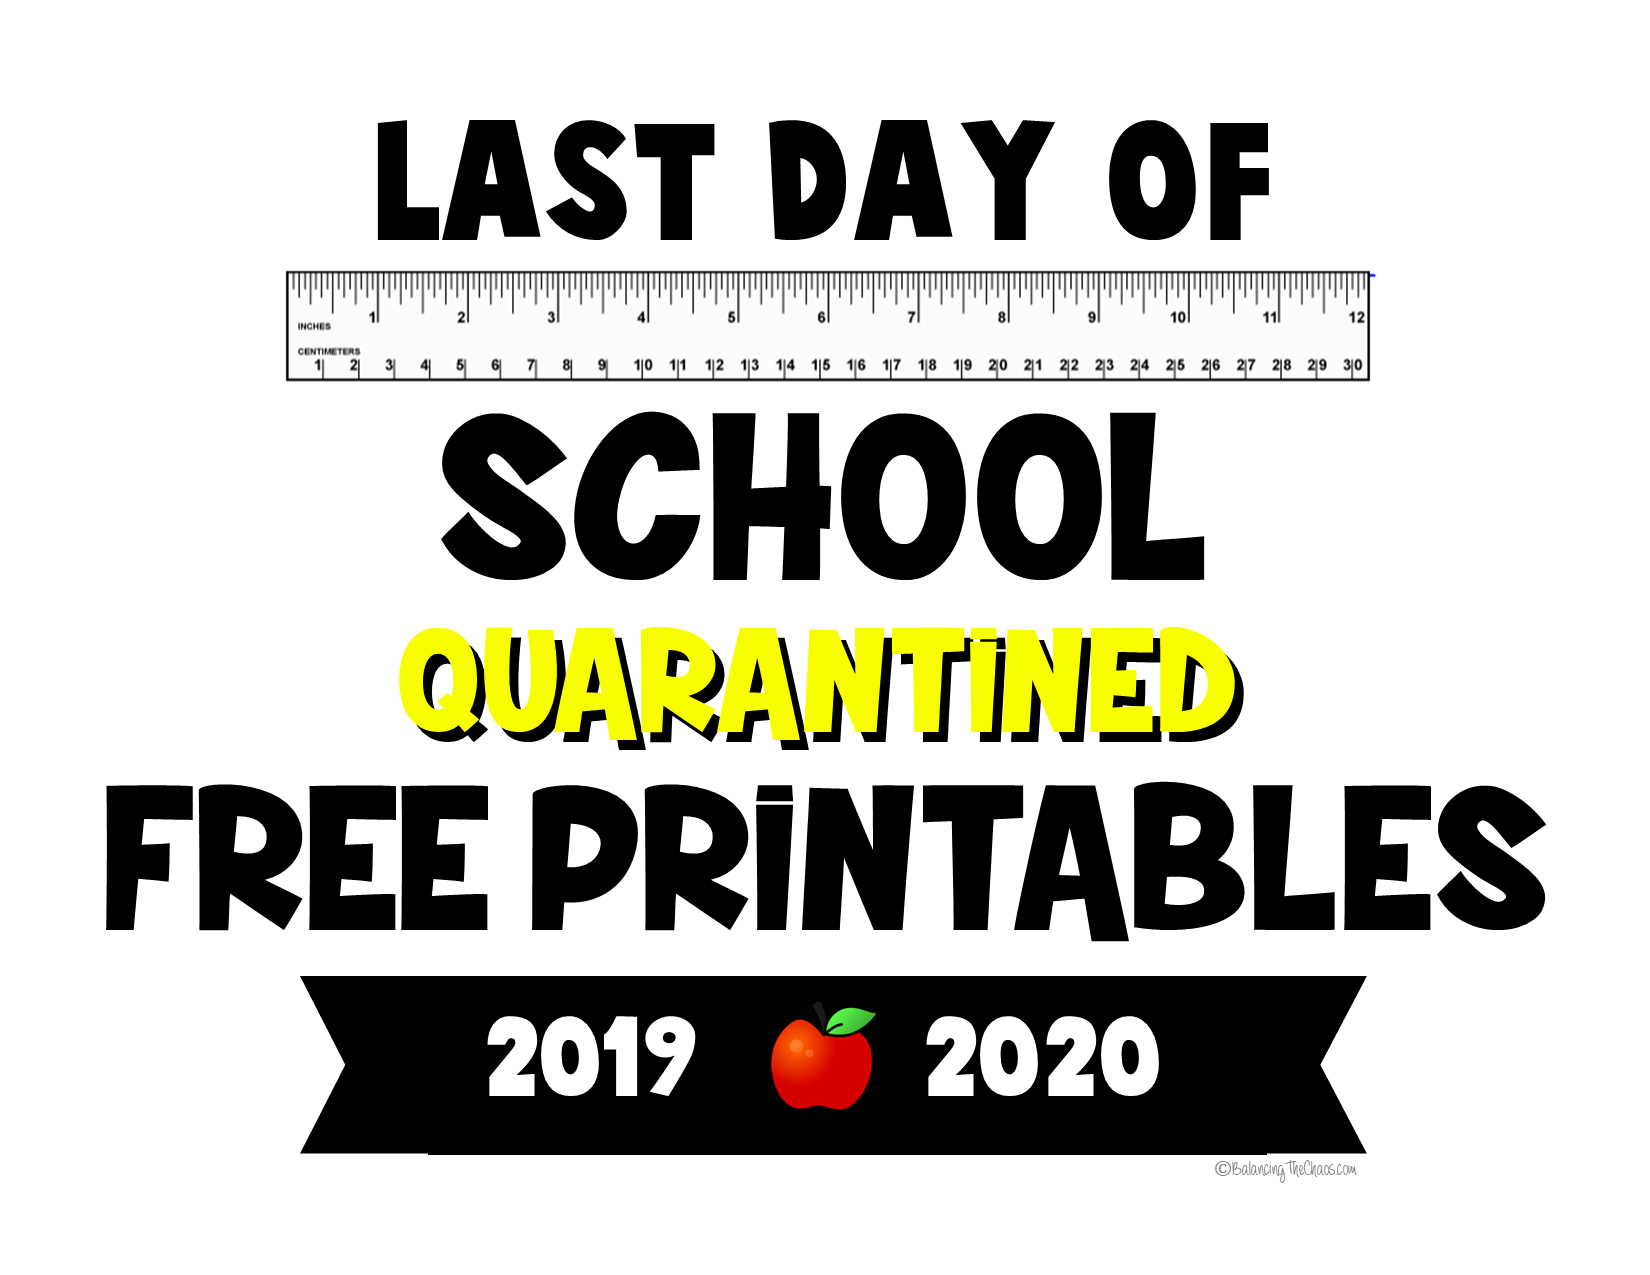 Last day of school quarantined Free Printables